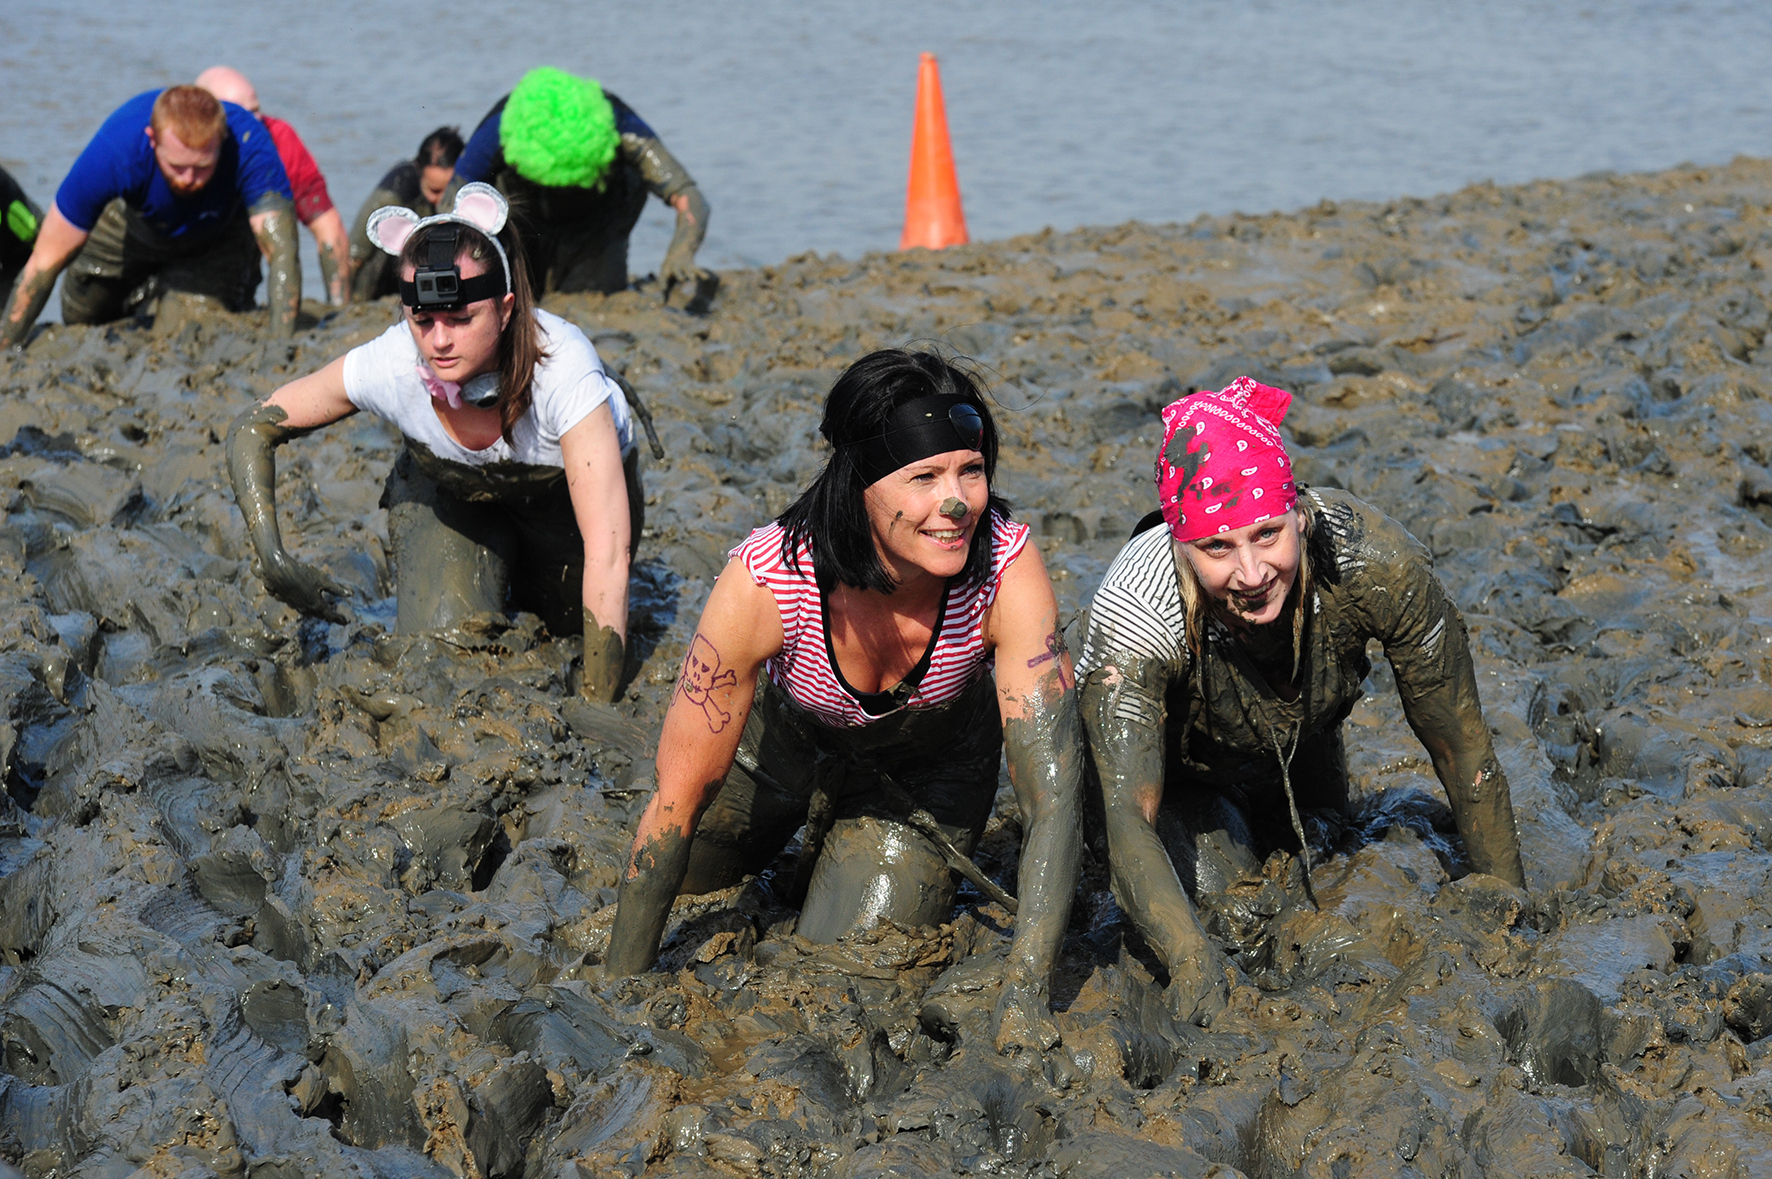 Stuck in: A few participant at last year's Maldon Mud Race wading through the course. In the 2017 race, 300 entrants managed to fundraise more than £35,000